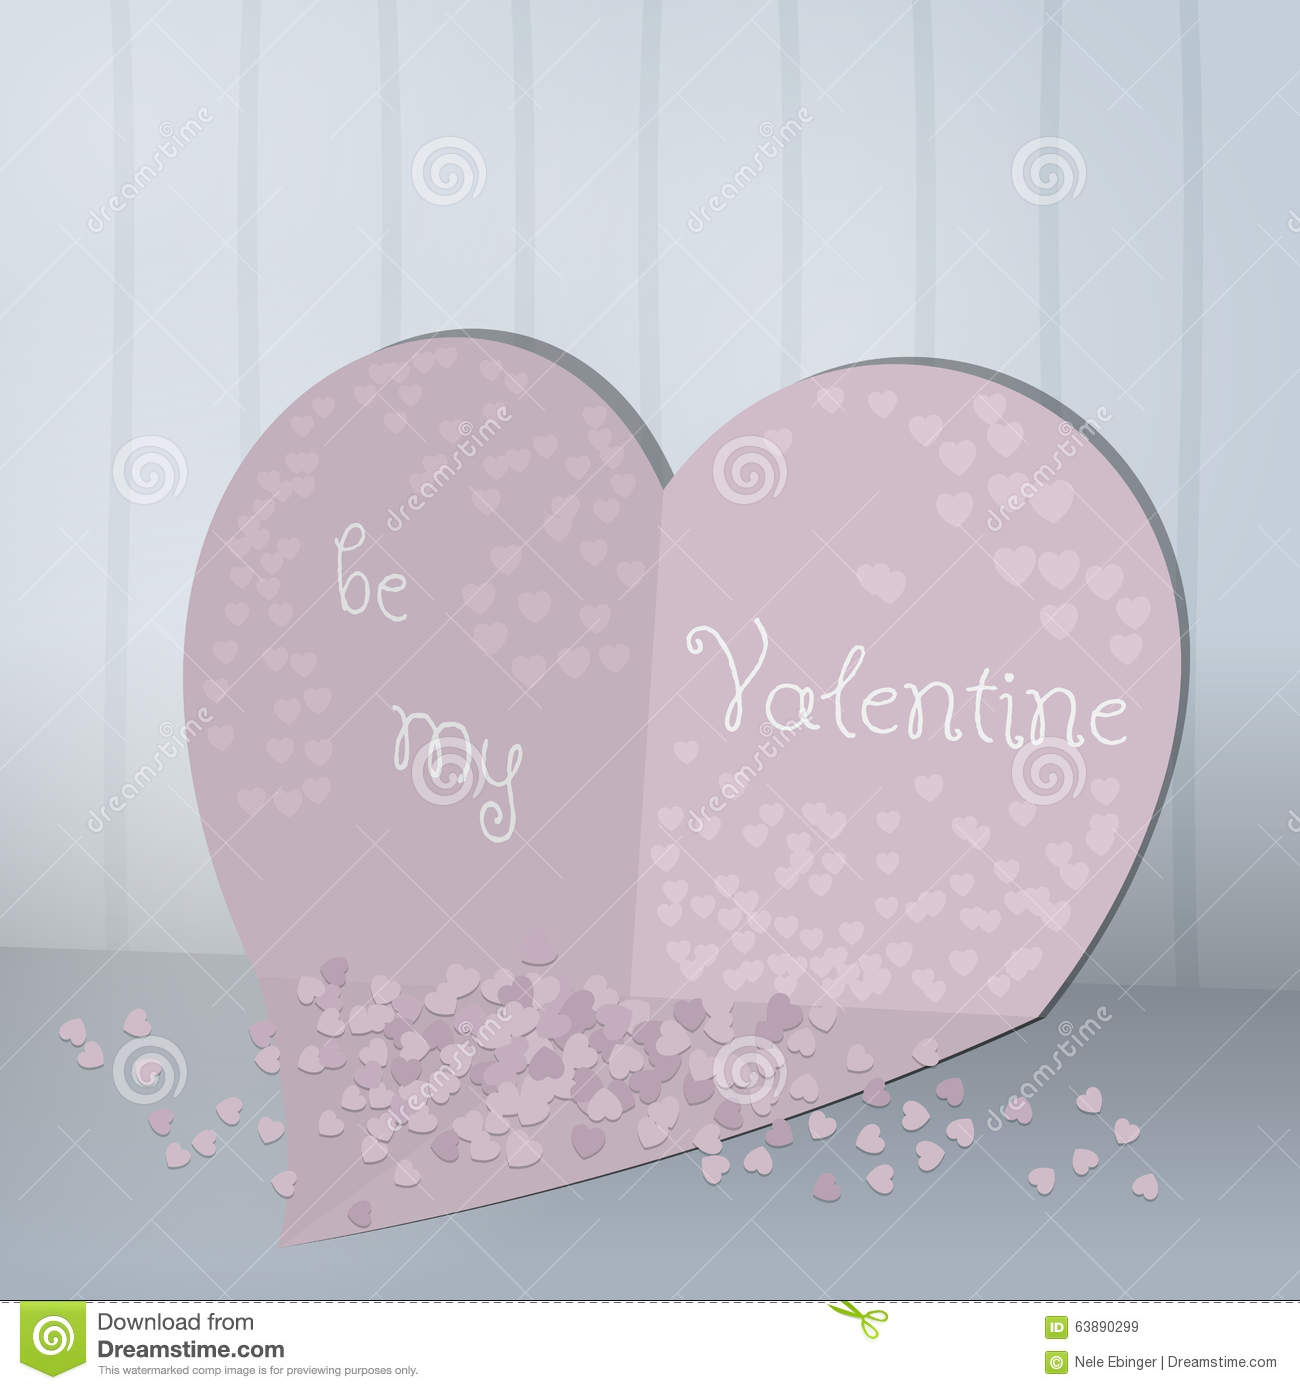 Abstract cards with paper hearts and confetti valentines day stock download abstract cards with paper hearts and confetti valentines day stock vector illustration of m4hsunfo